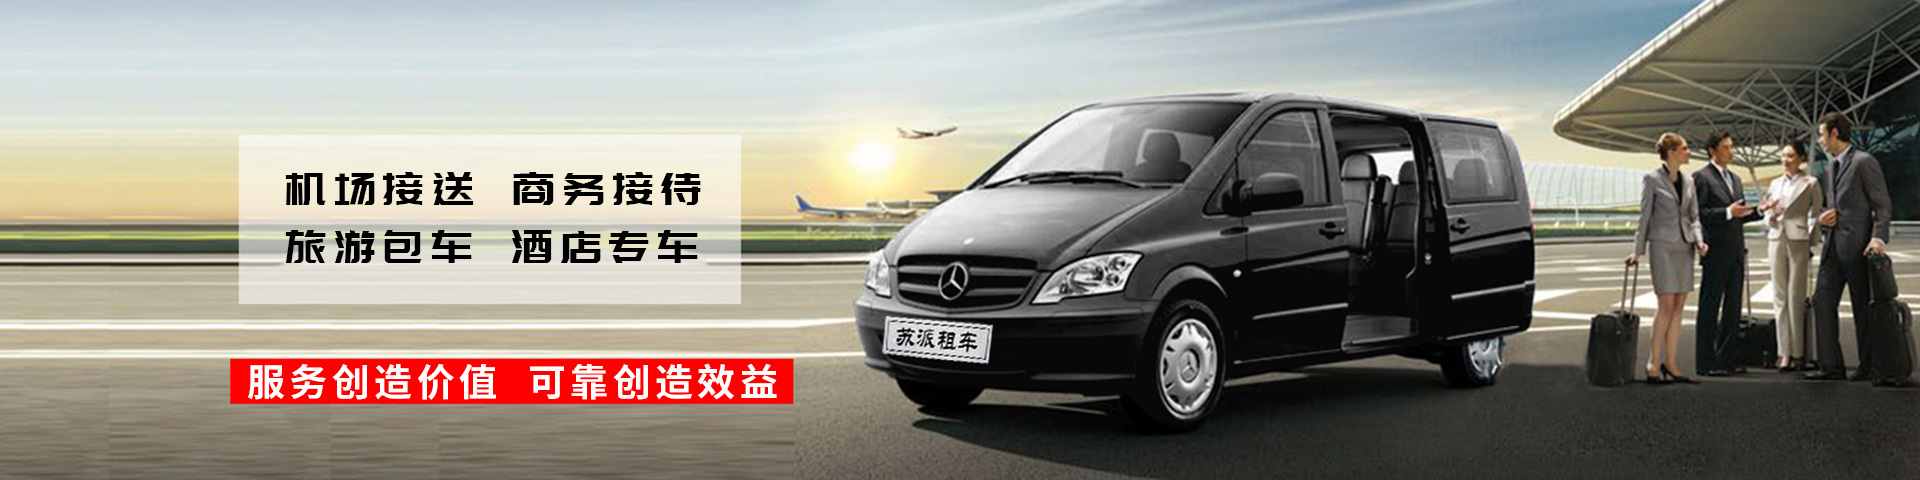 Suzhou Supai Car Leasing Co., Ltd.